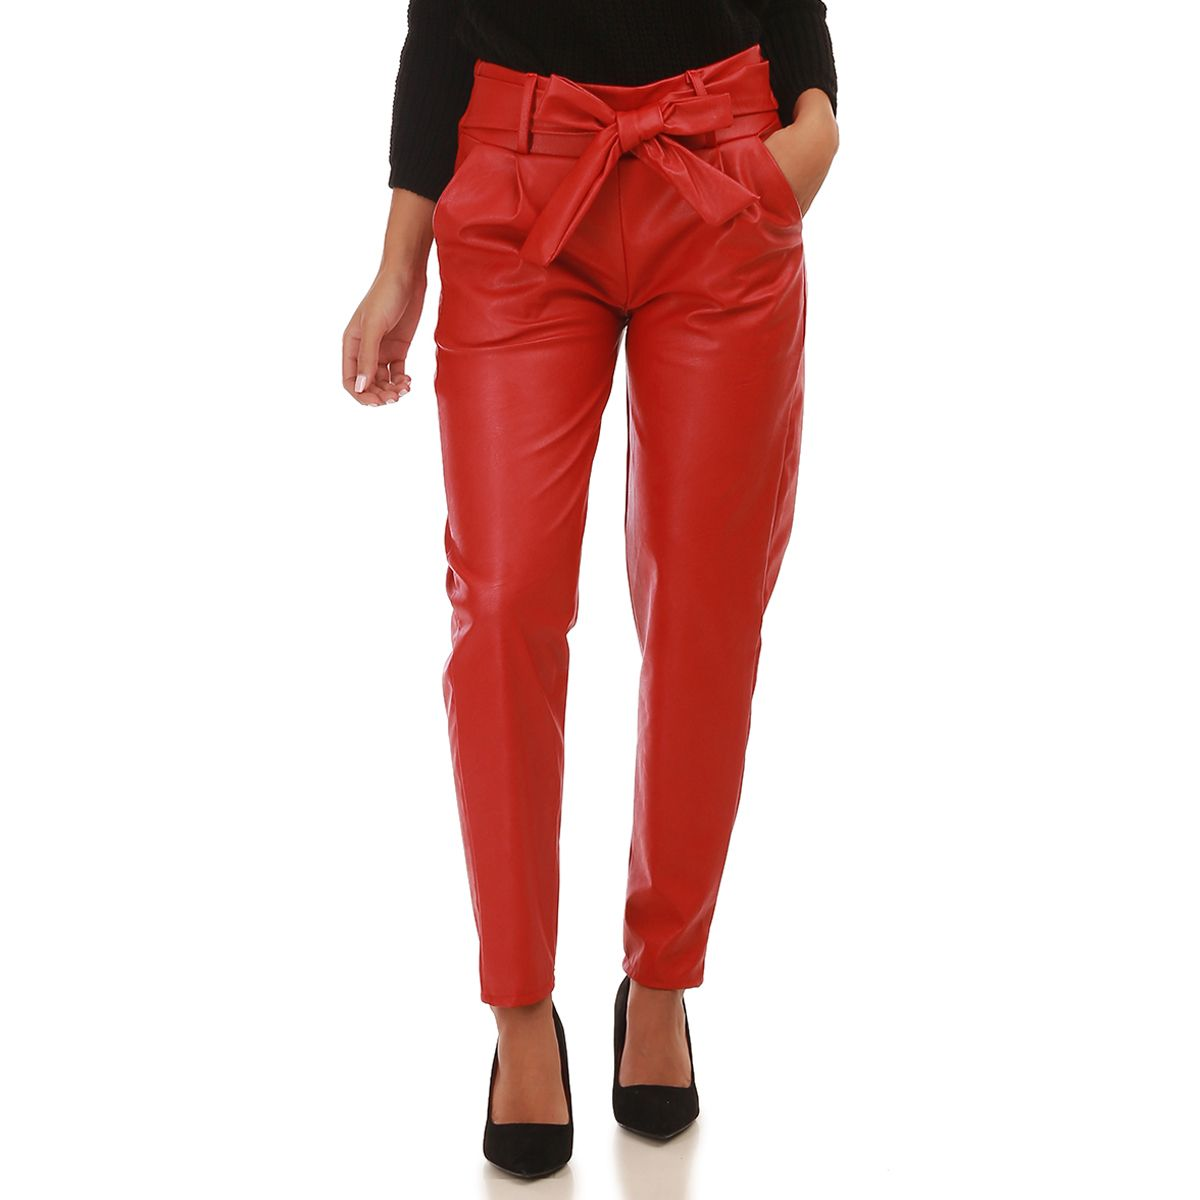 Pantalon cigarette en similicuir rouge